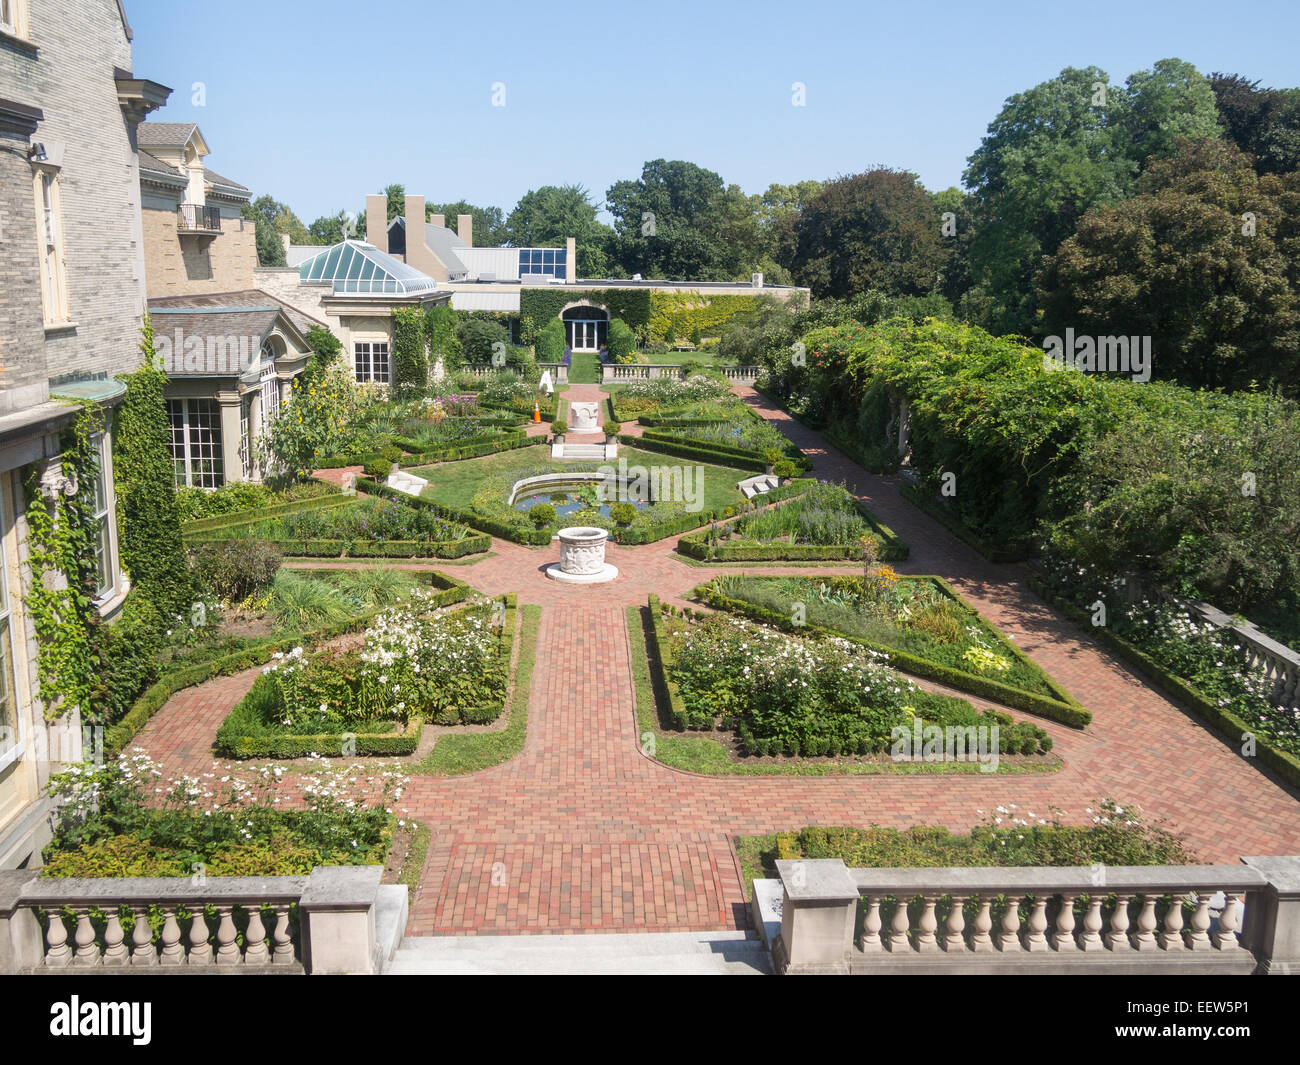 The West Garden overview. The formal and geometric layout of Eastman House's west garden. - Stock Image